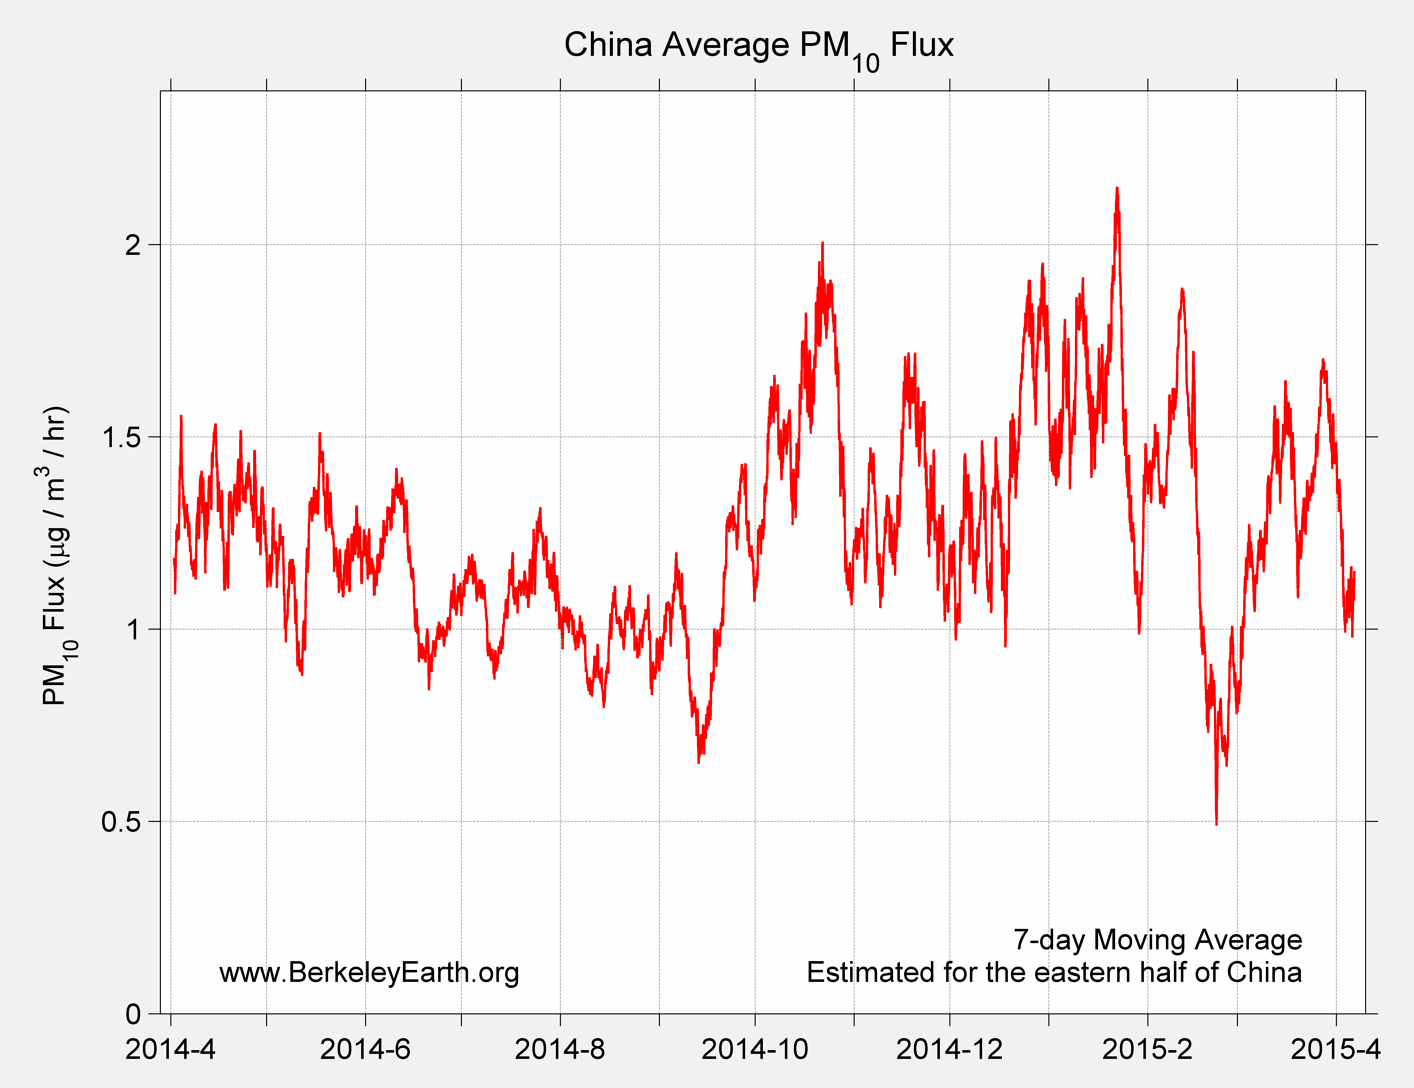 China_pm10_Average_Flux_TimeSeries